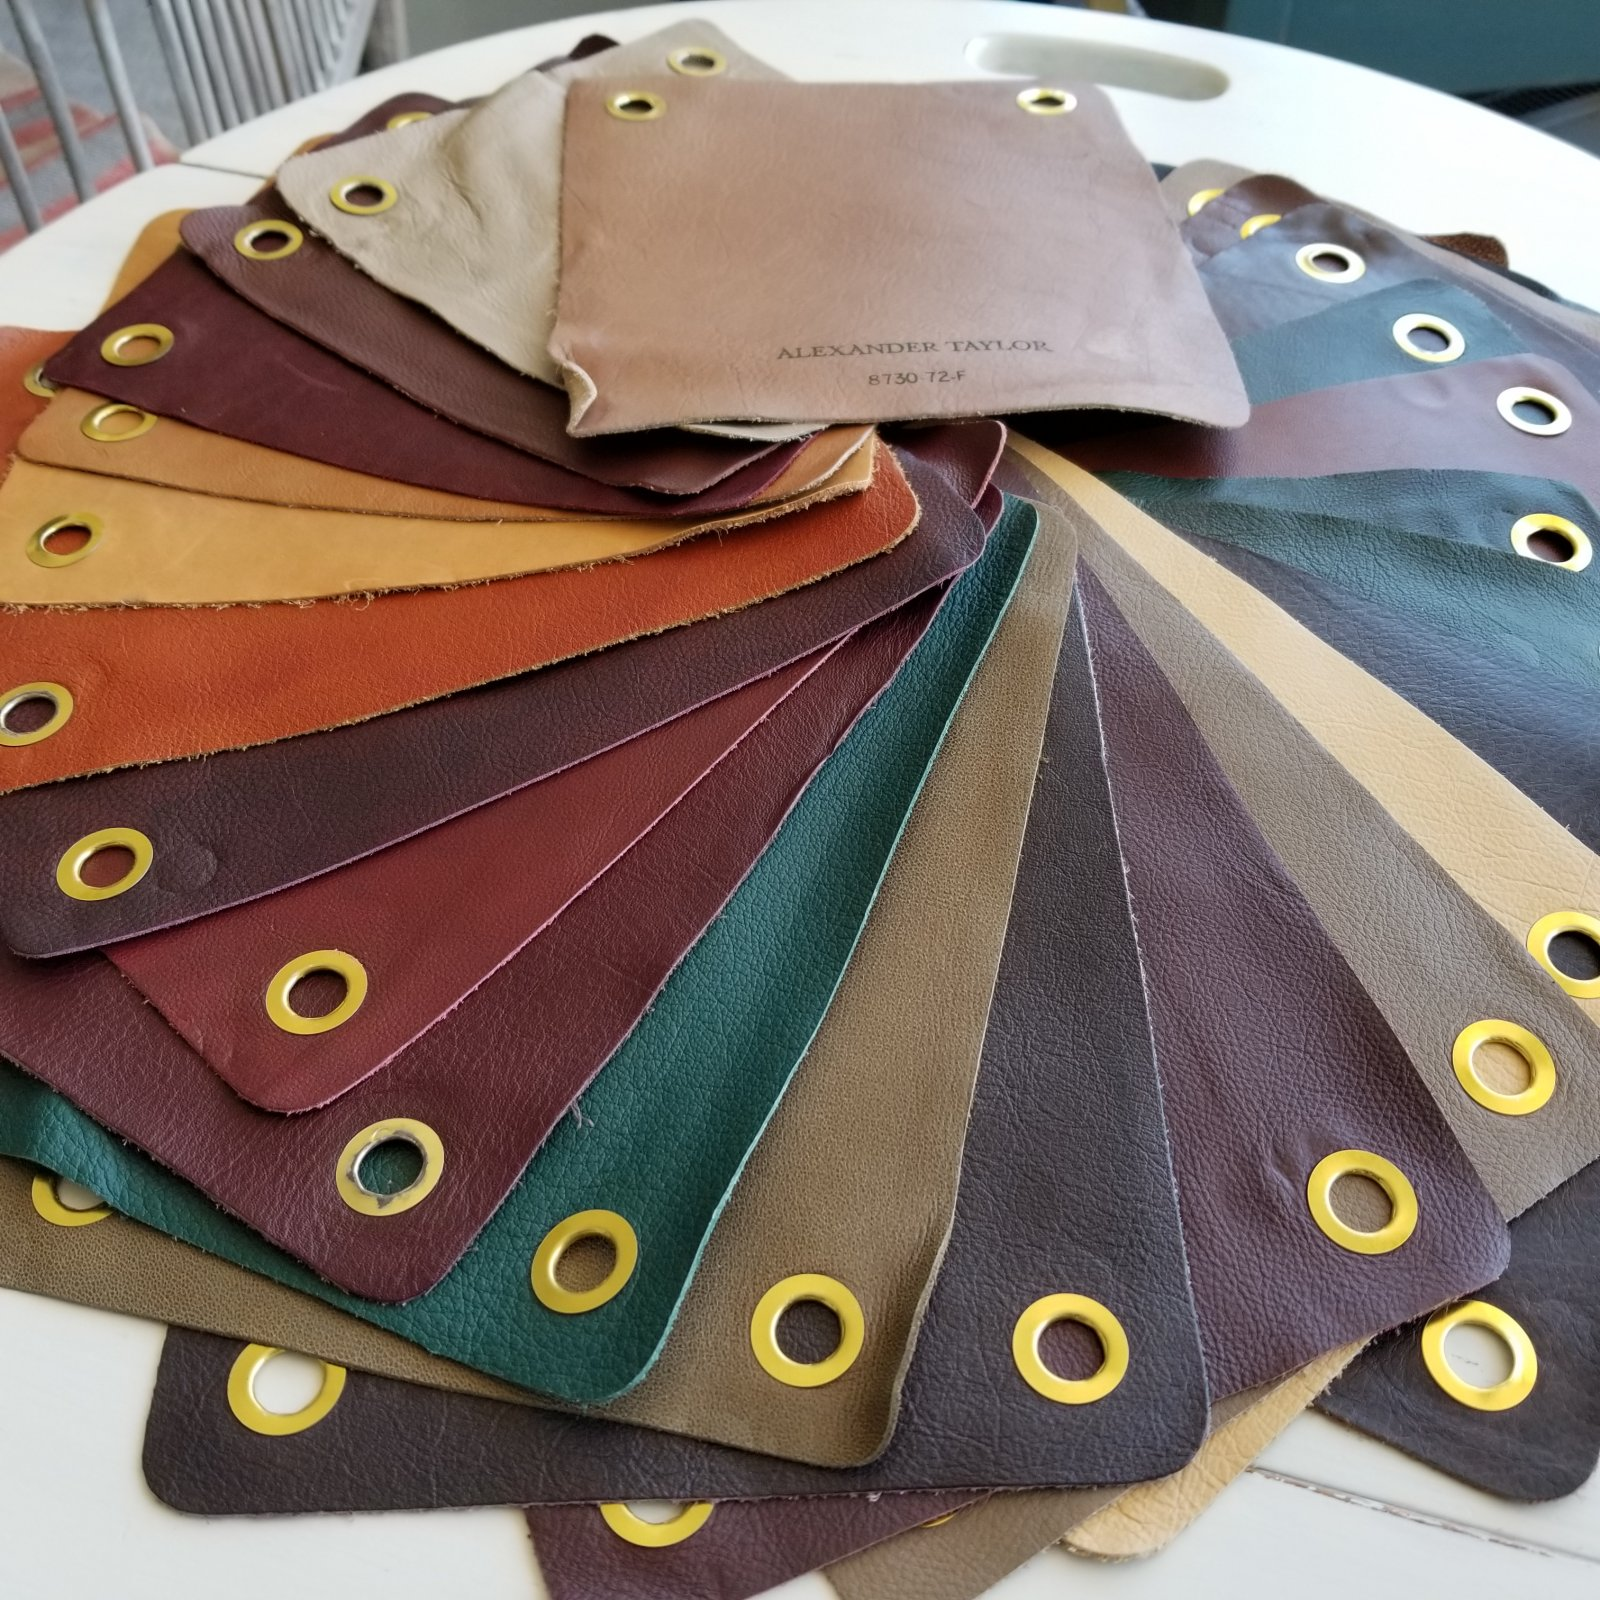 Leather samples 8x10